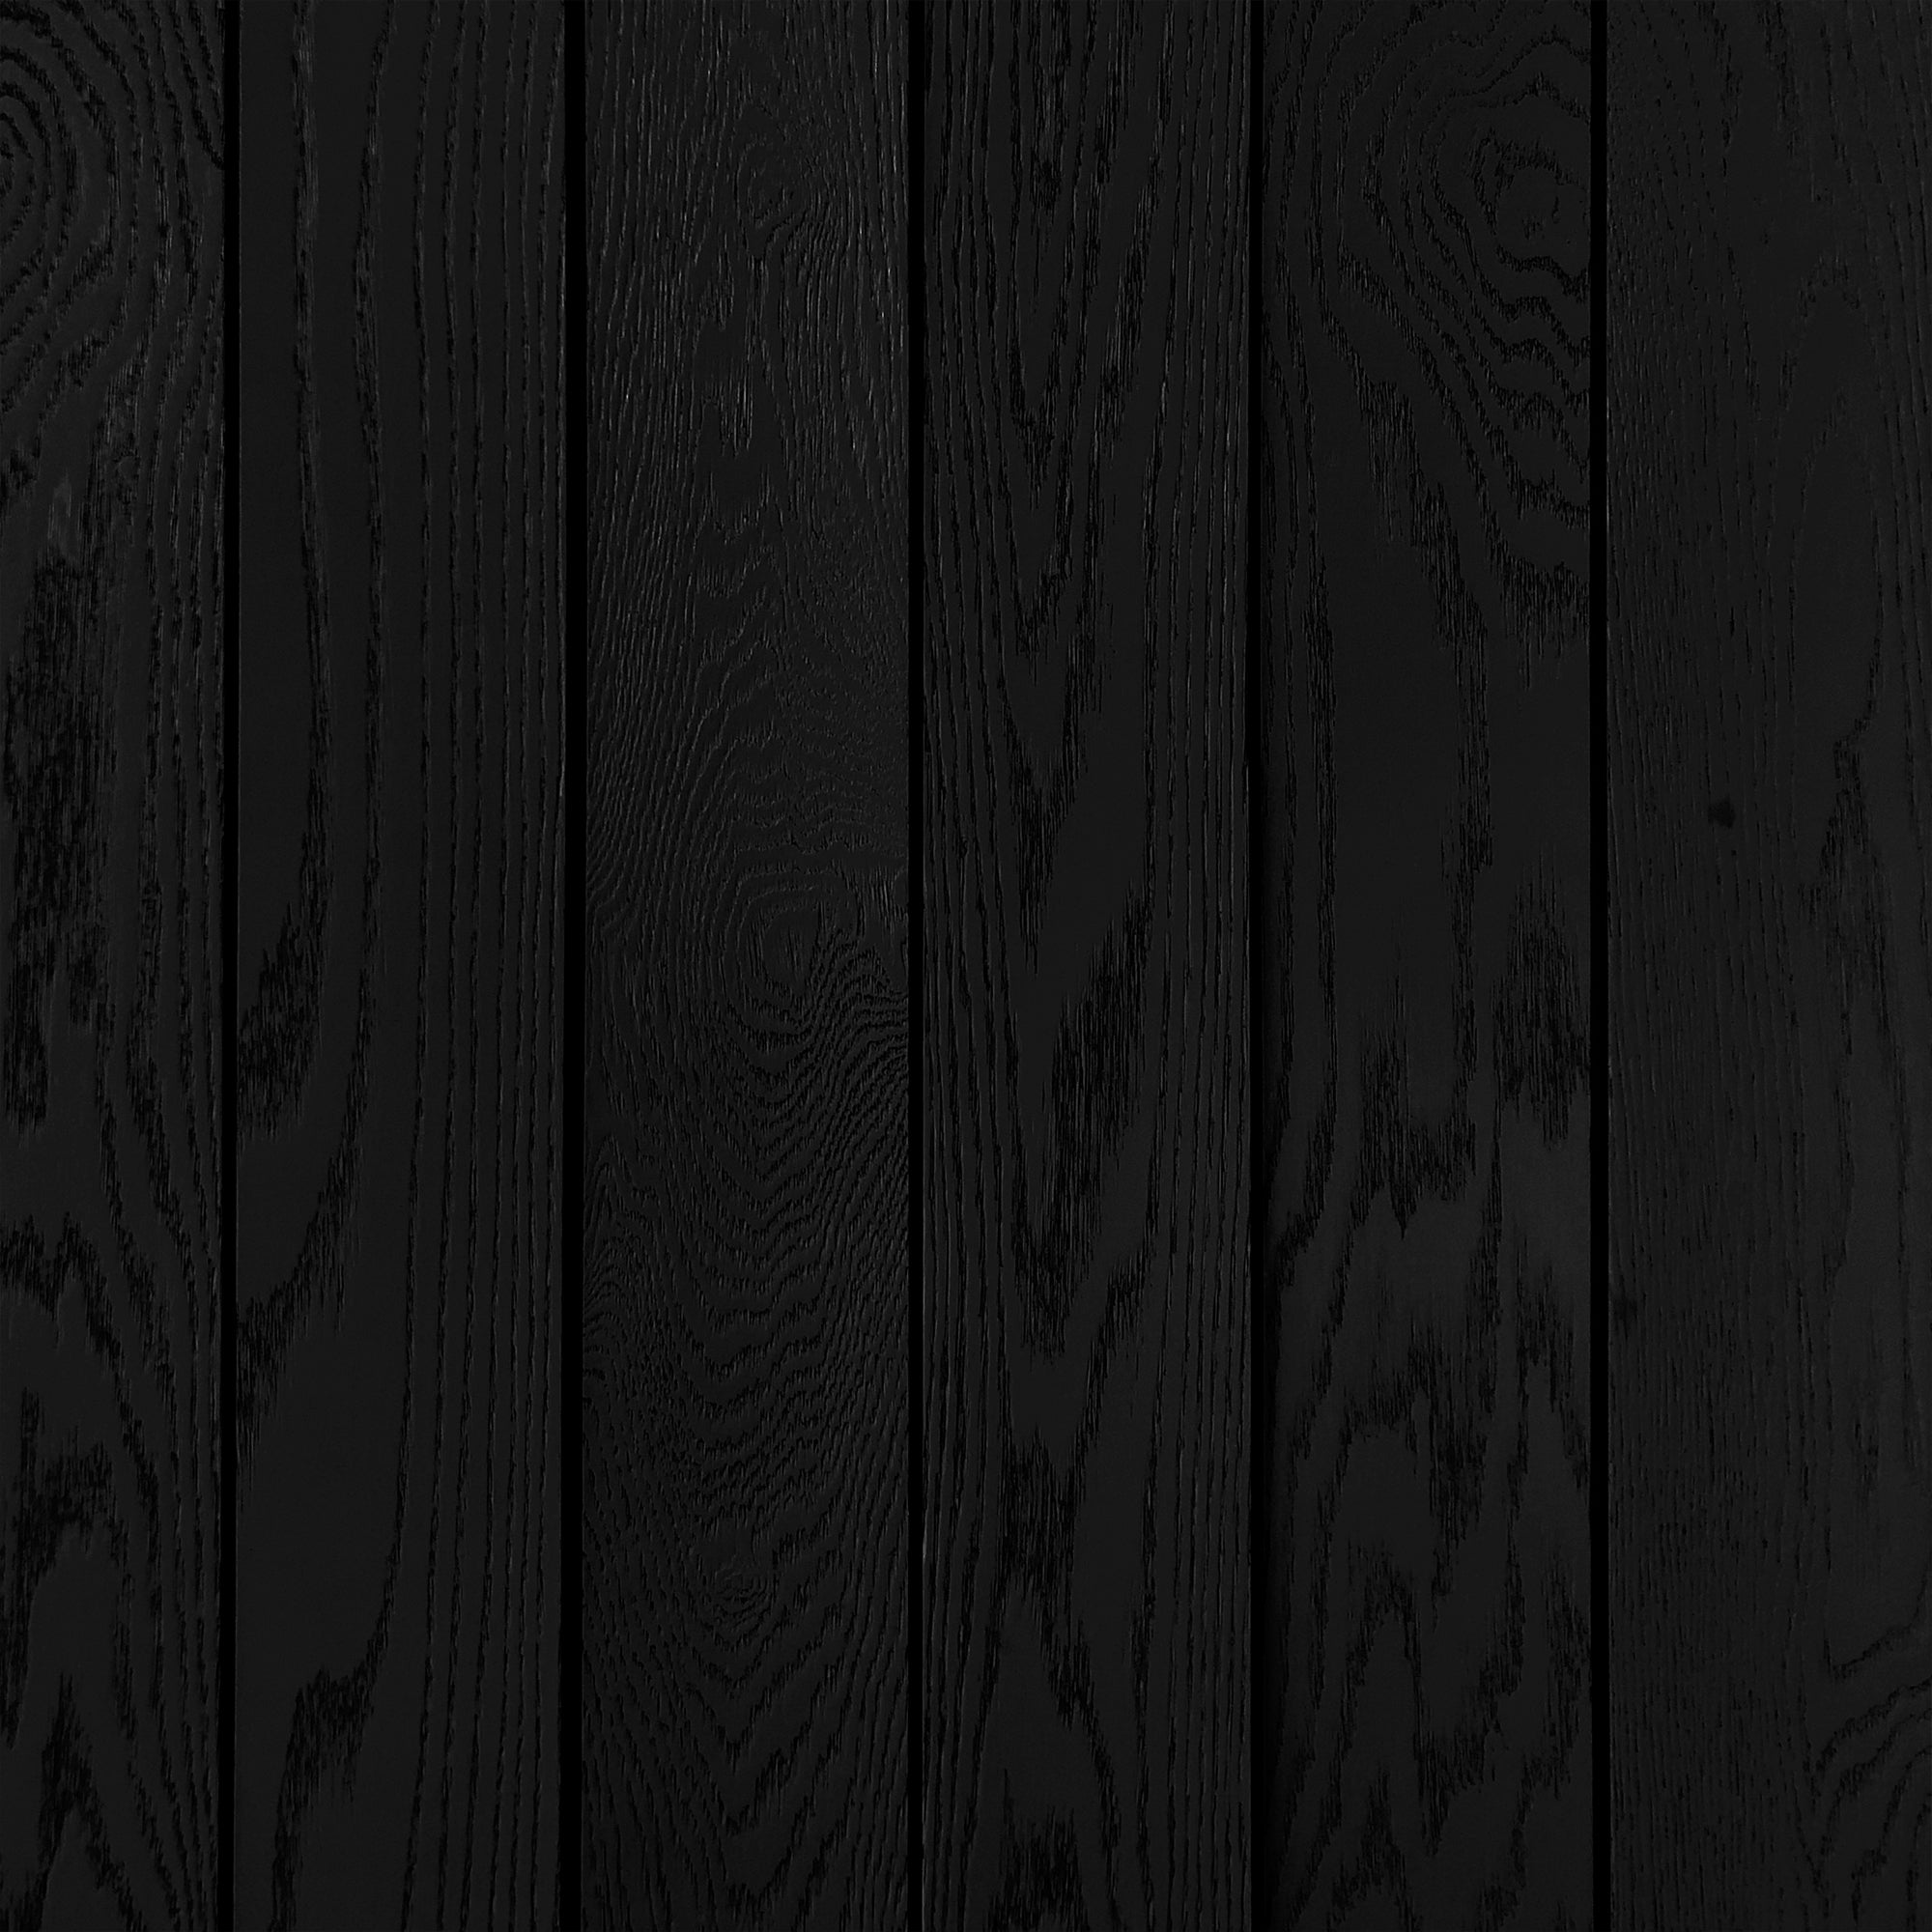 True Black Oak Shiplap Sample